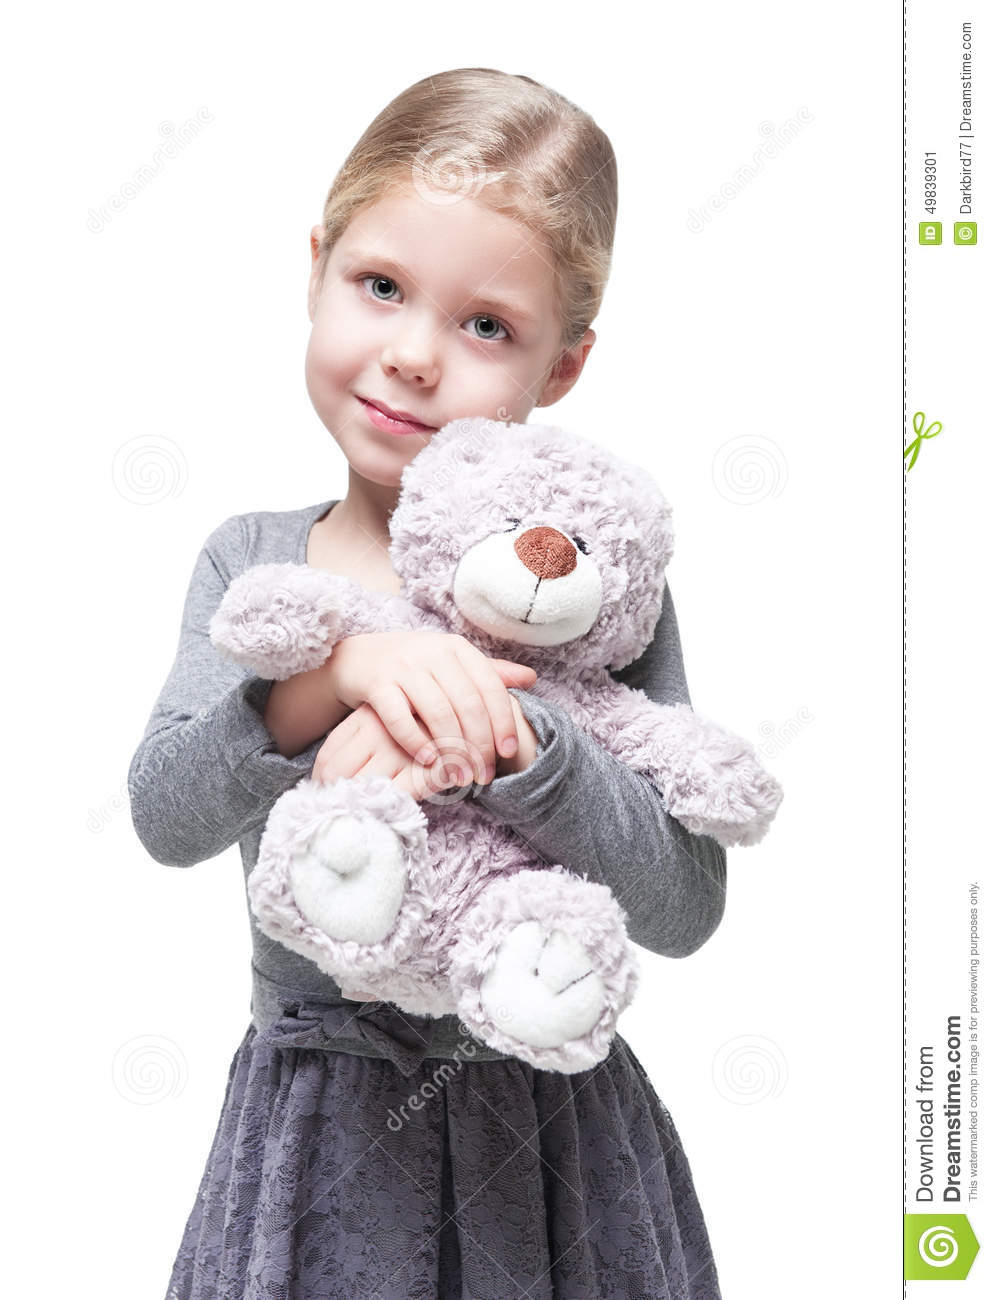 Beautiful Little Girl With Teddy Bear Isolated Stock Image ...Little Girl With Teddy Bear Black And White